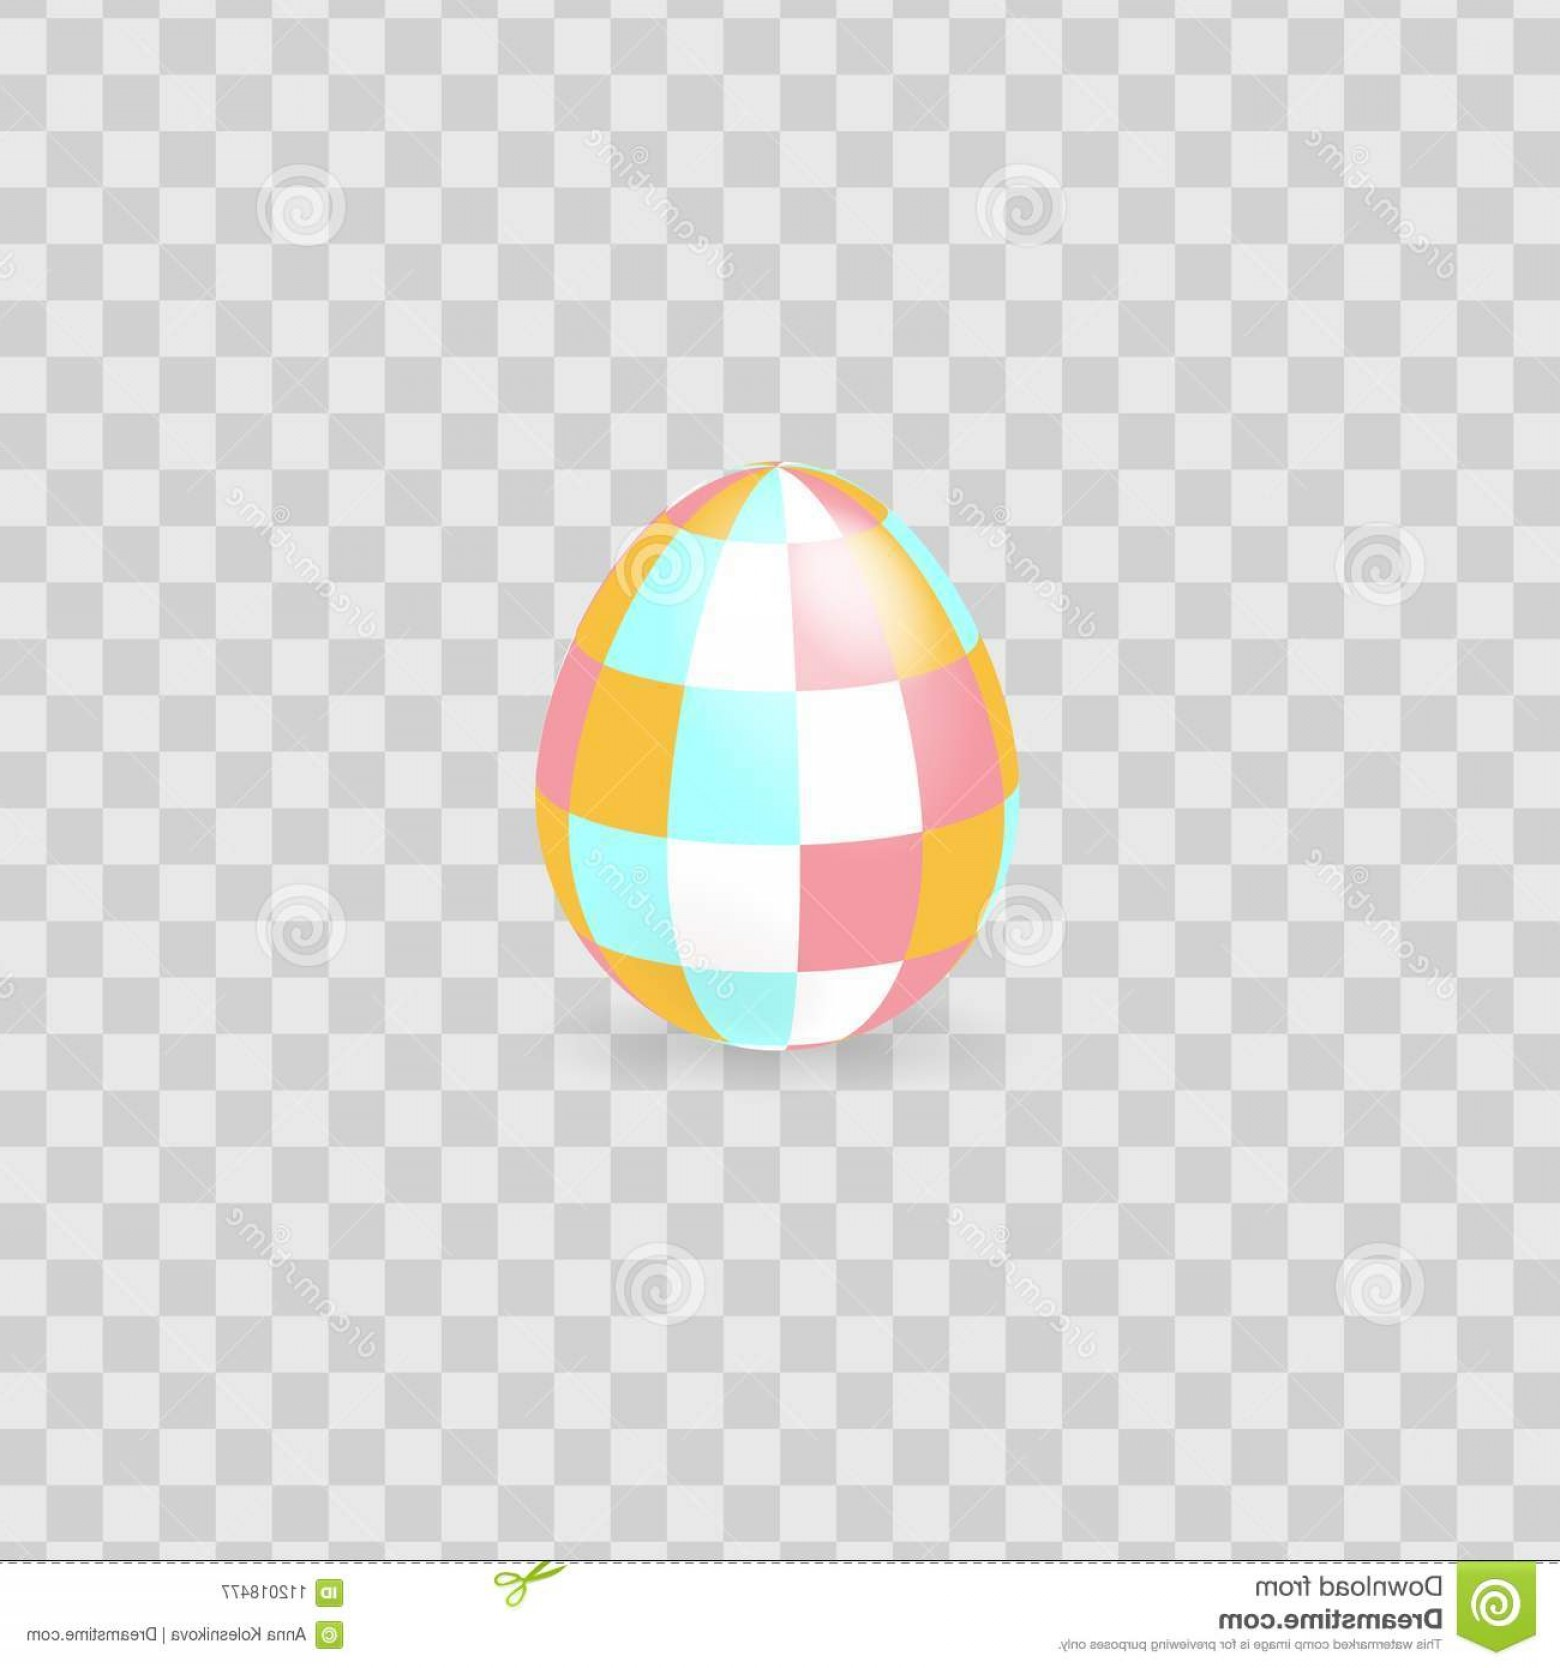 Easter Vector No Background: Colorful Easter Egg Isolated Transparent Background Vector Illustration Image